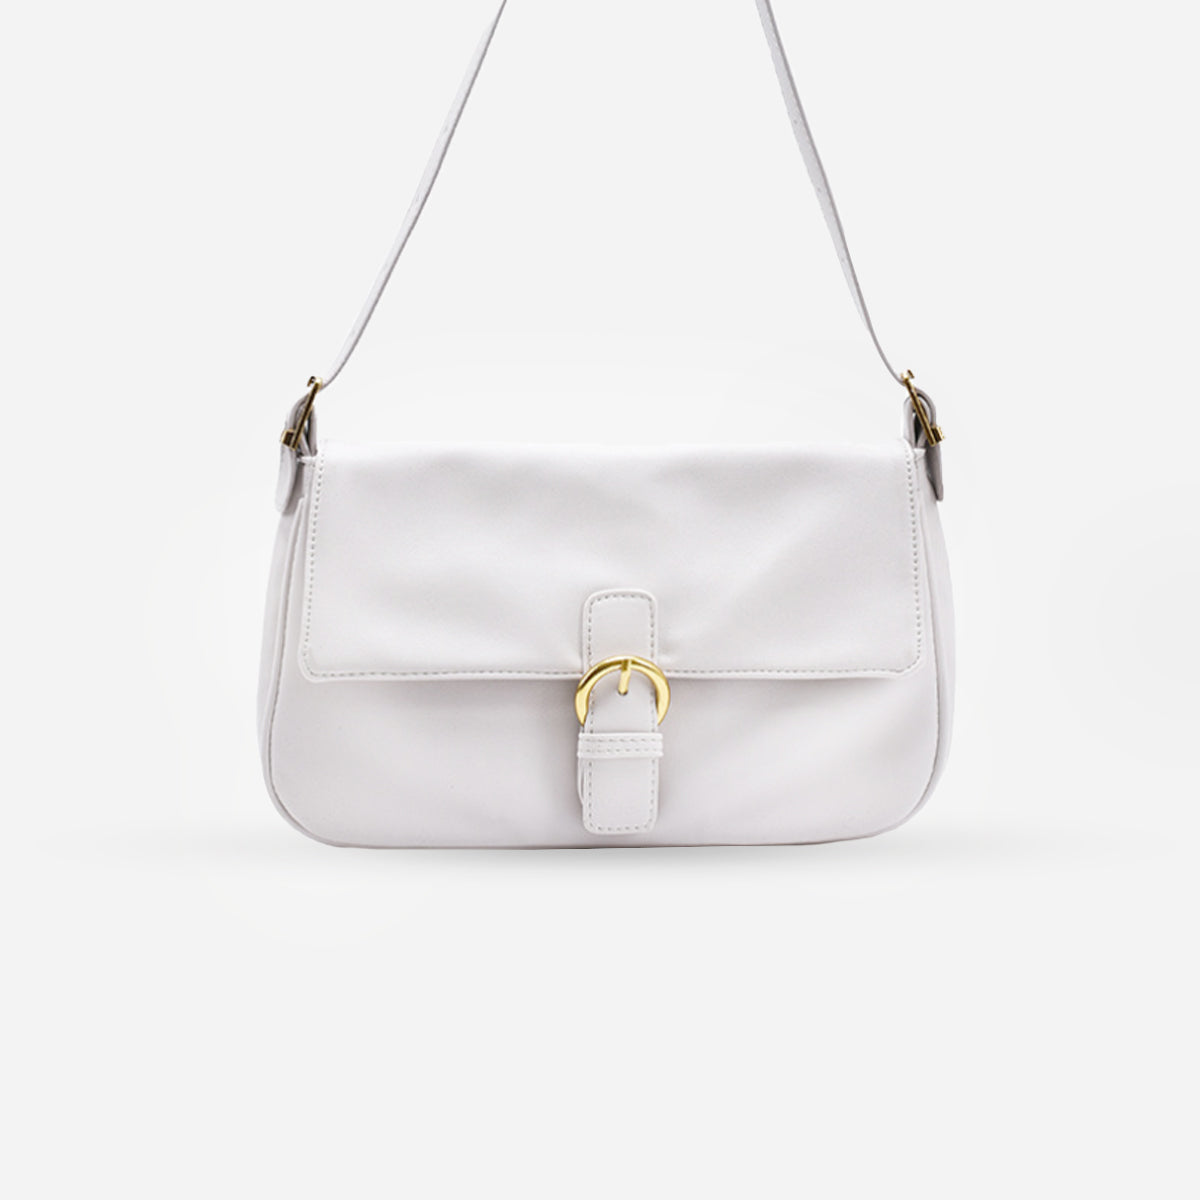 Celeste Shoulder Bag- Cream